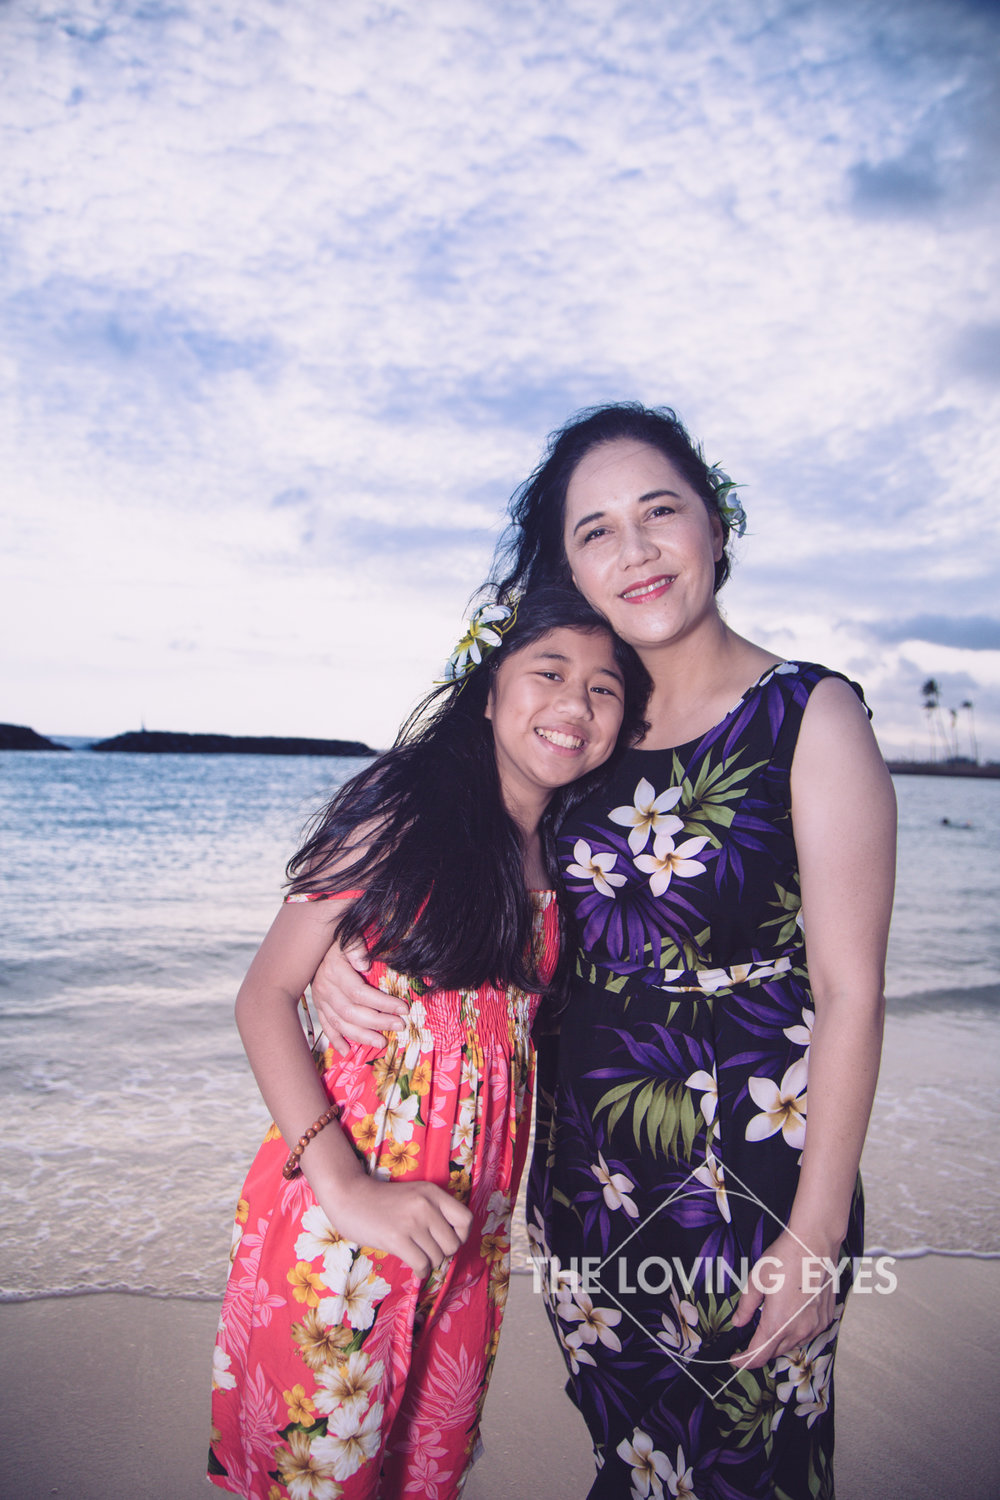 Mother and daughter portrait on the beach at Ala Moana Beach Park in Hawaii